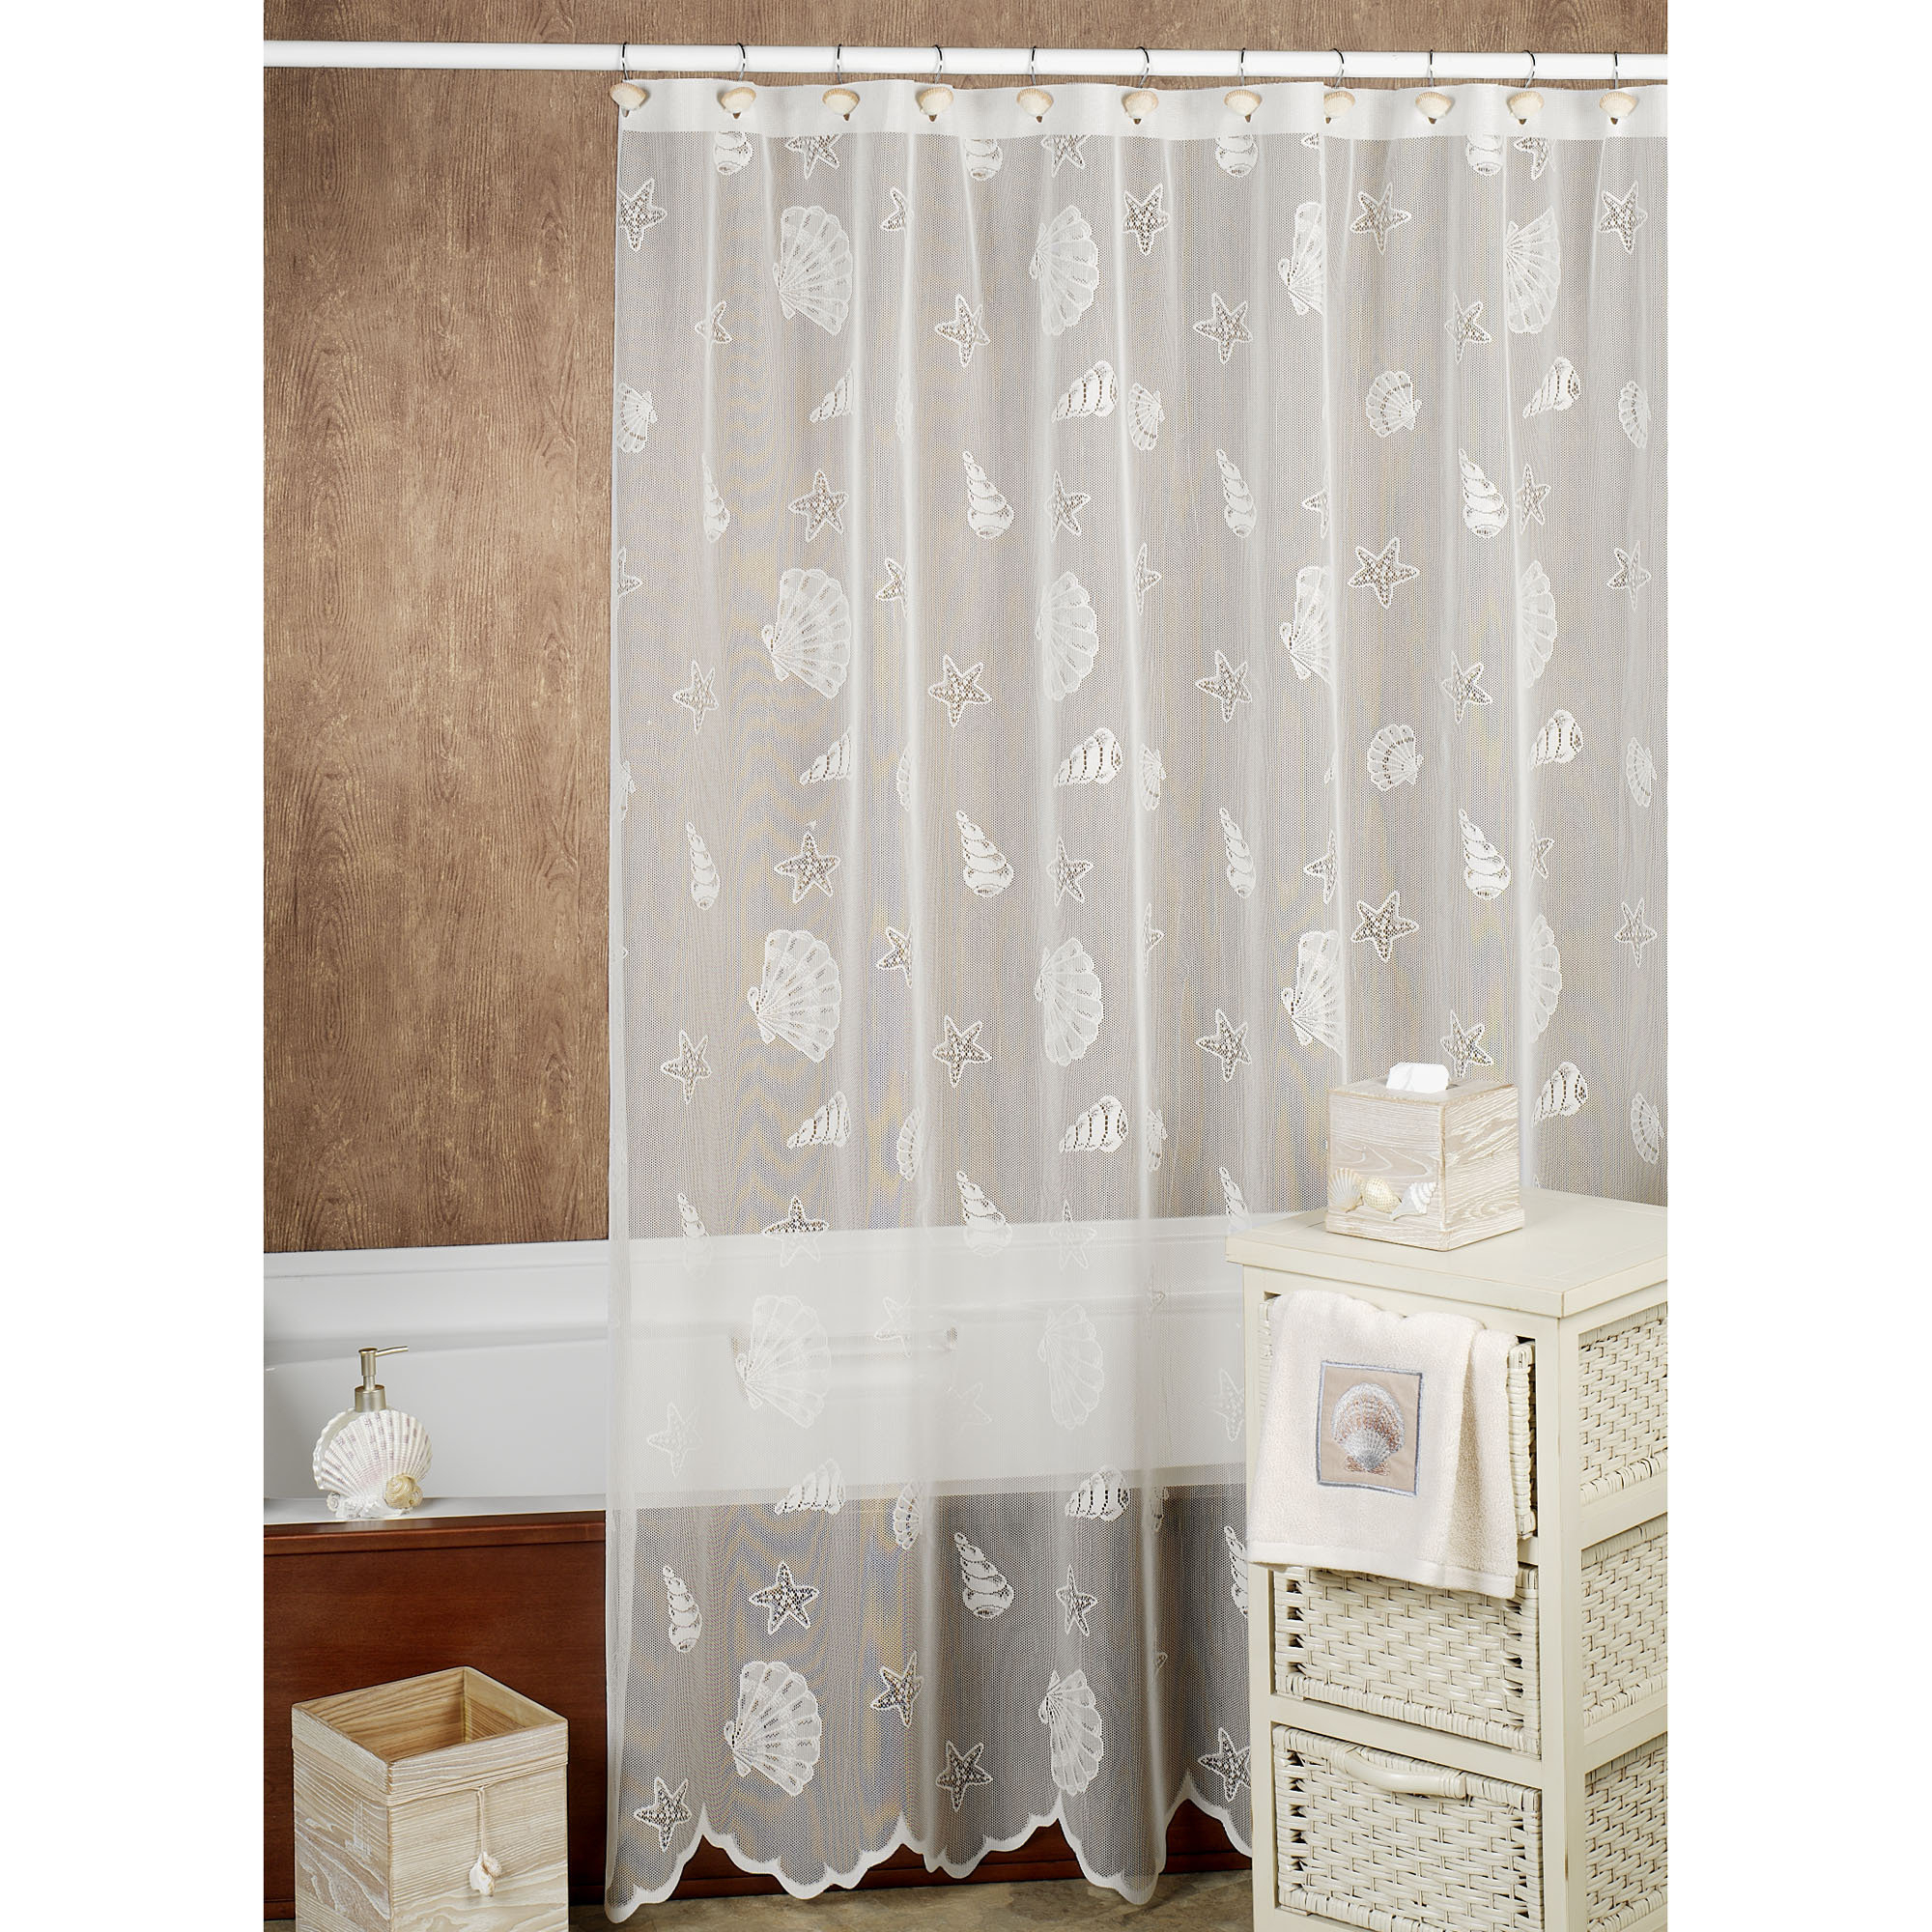 Sheer Linen Shower Curtains Shower Curtains Design throughout sizing 2000 X 2000